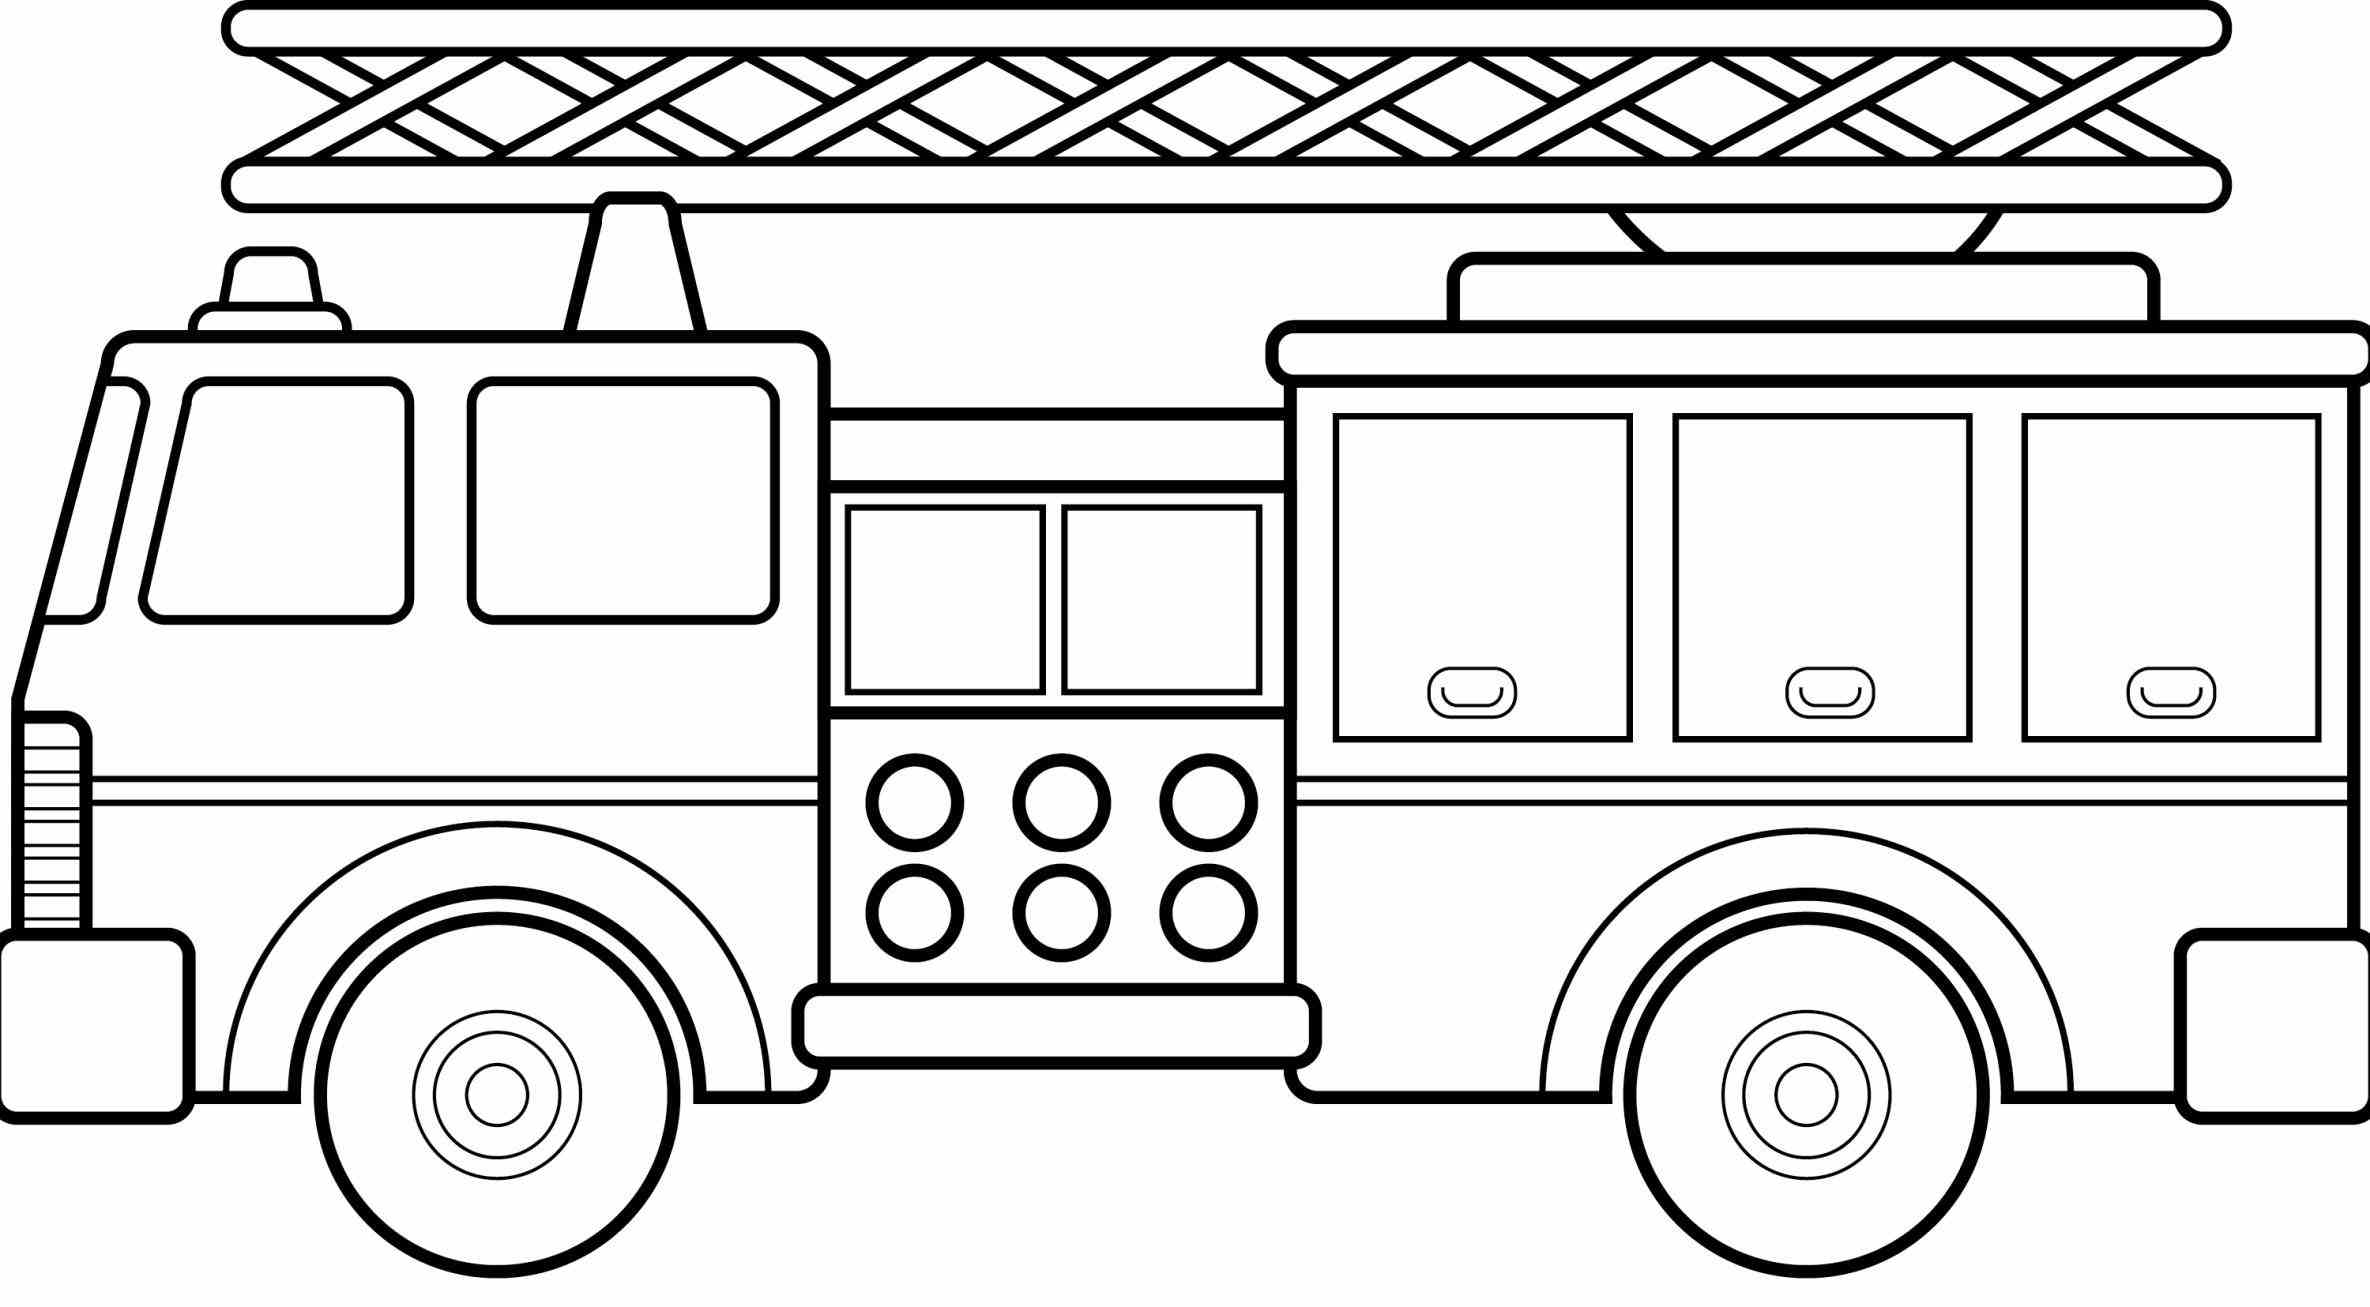 coloring house on fire clipart black and white clip art buildings fire station coloring page i on and house white fire clipart coloring black